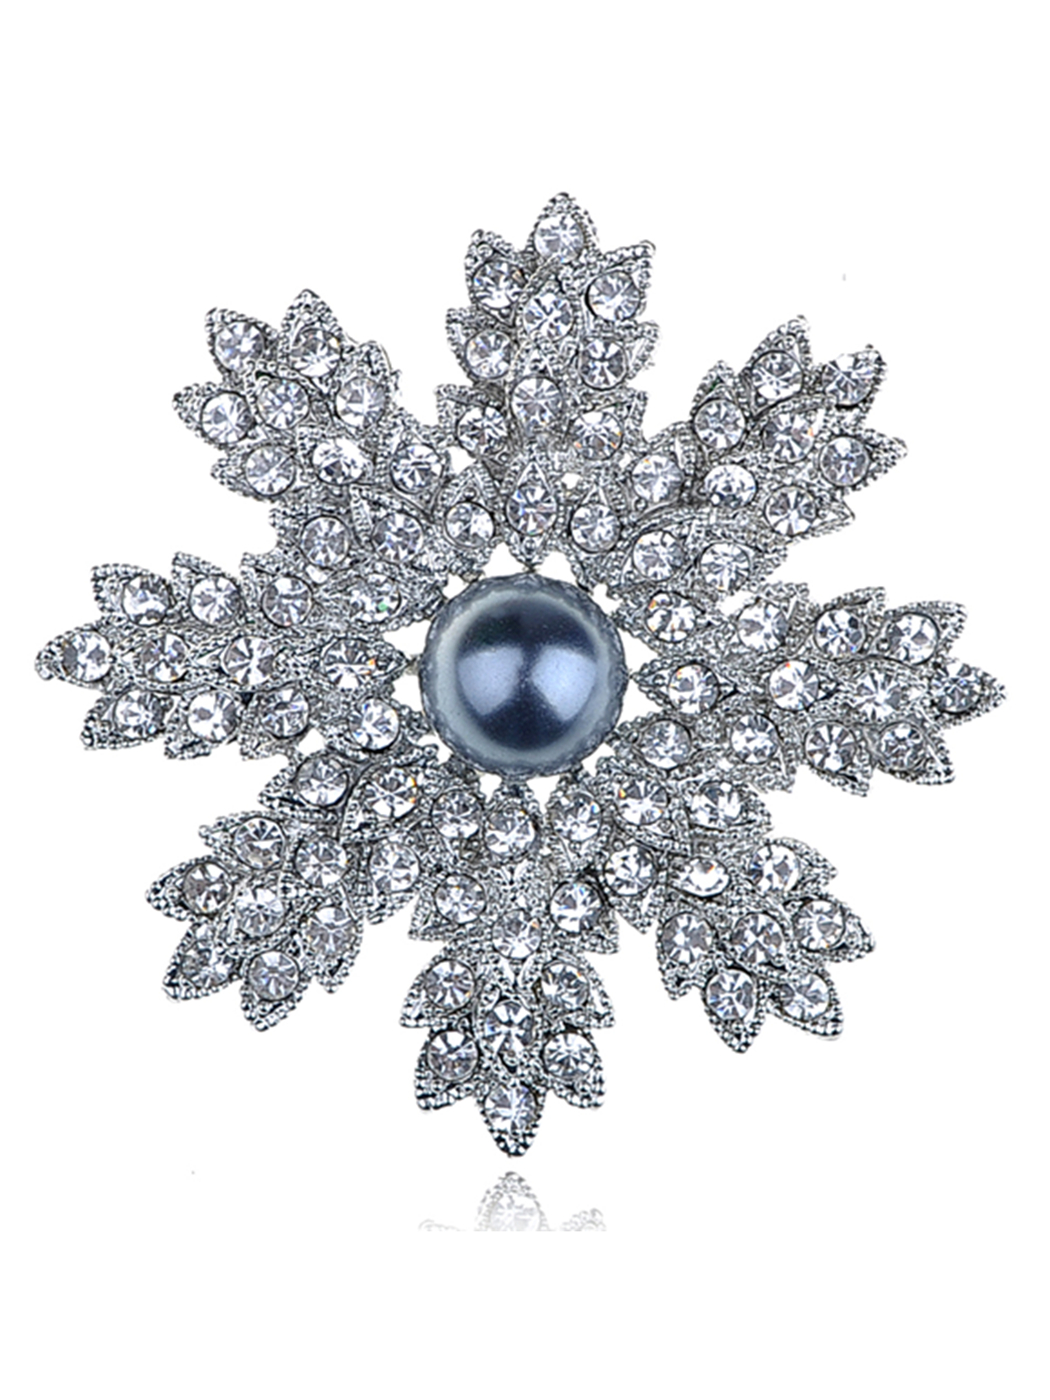 Stunning Clear Crystal Rhinestone Faux Pearl Christmas Snowflake Pin Brooch